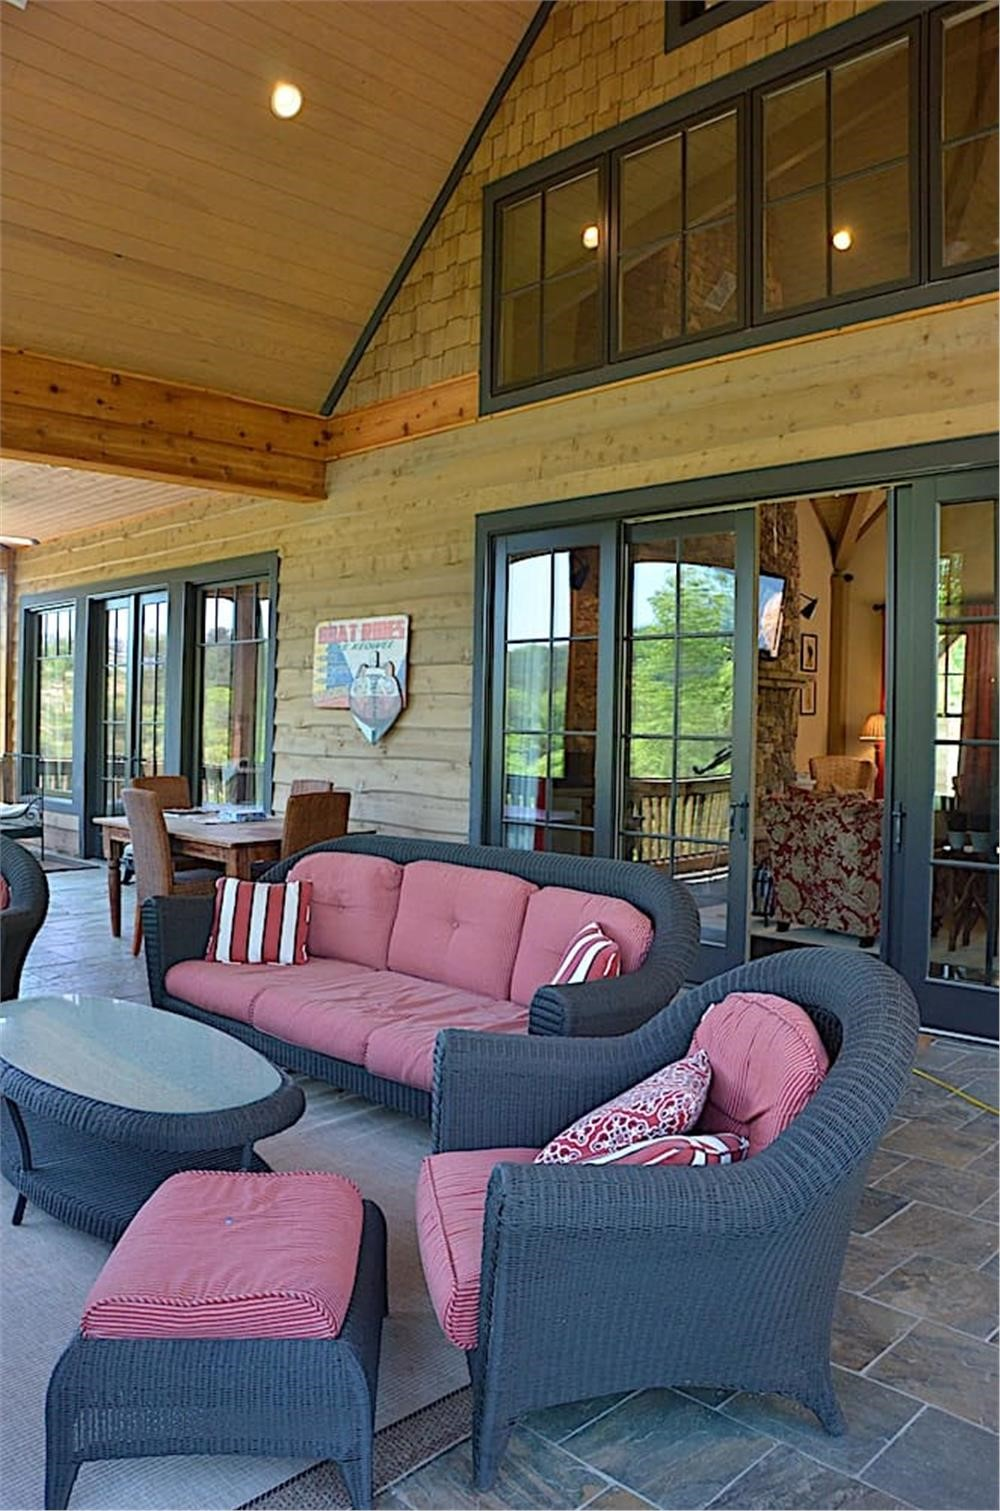 Covered rear porch with outdoor furniture vaulted ceiling